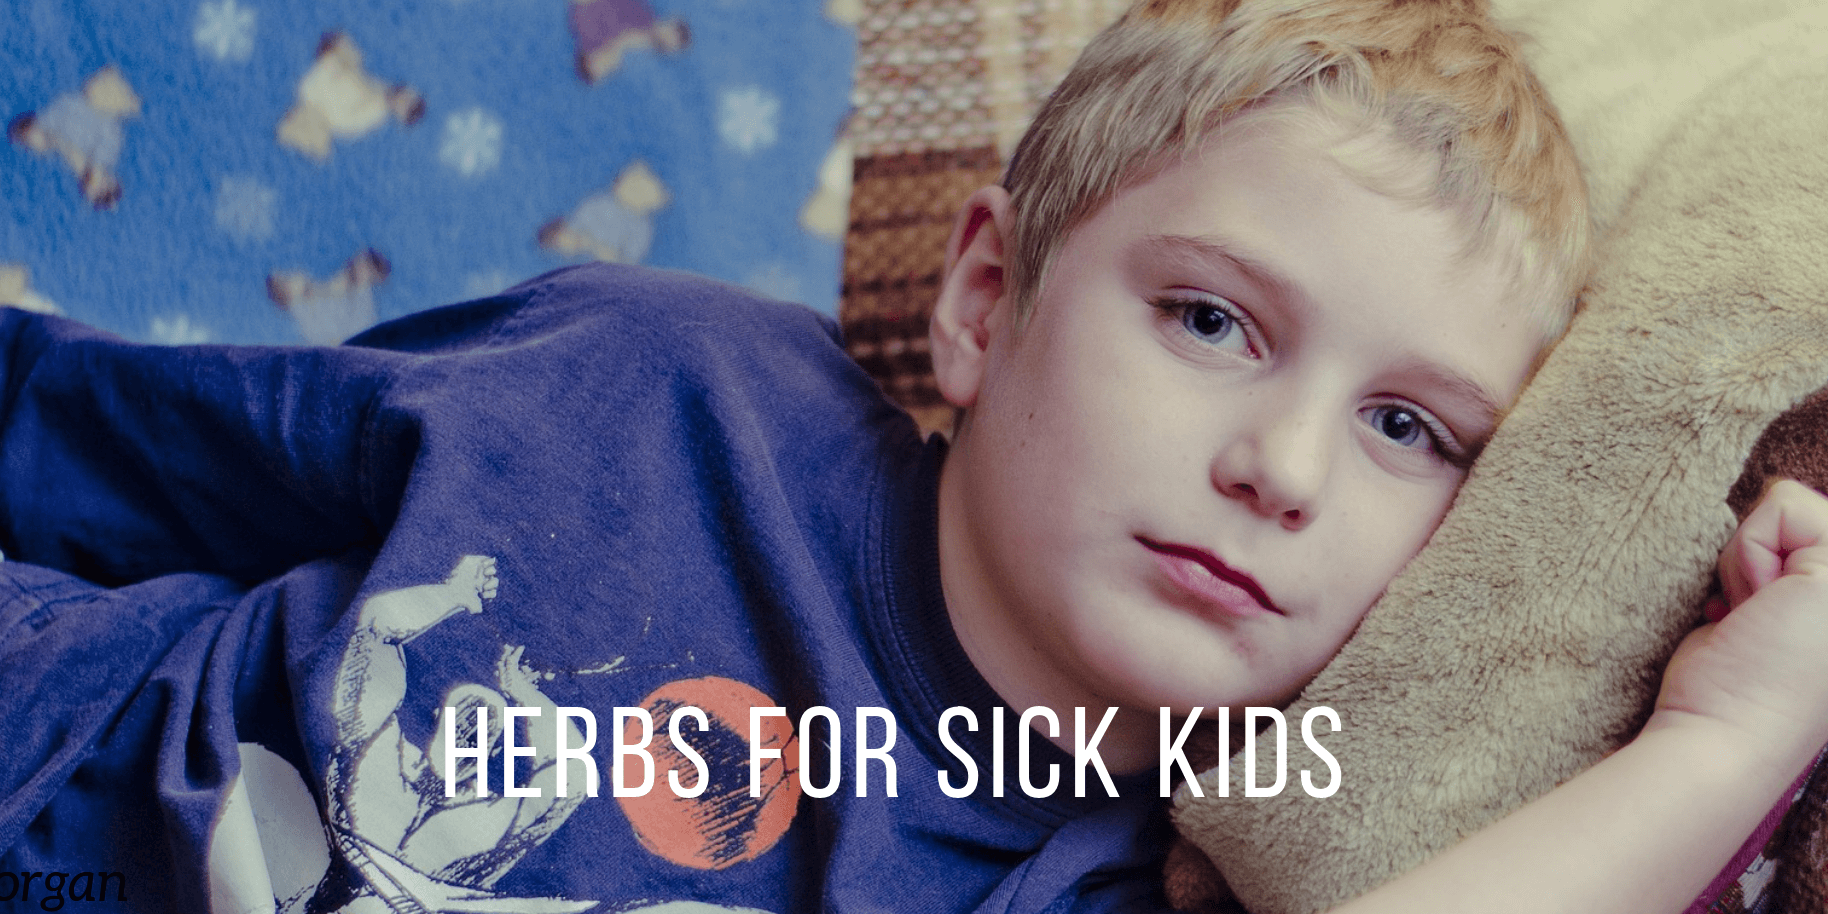 CK Health and Wellbeing - Boost Immune System for Kids Colds and Flu - Herbs for Sick Kids Boy